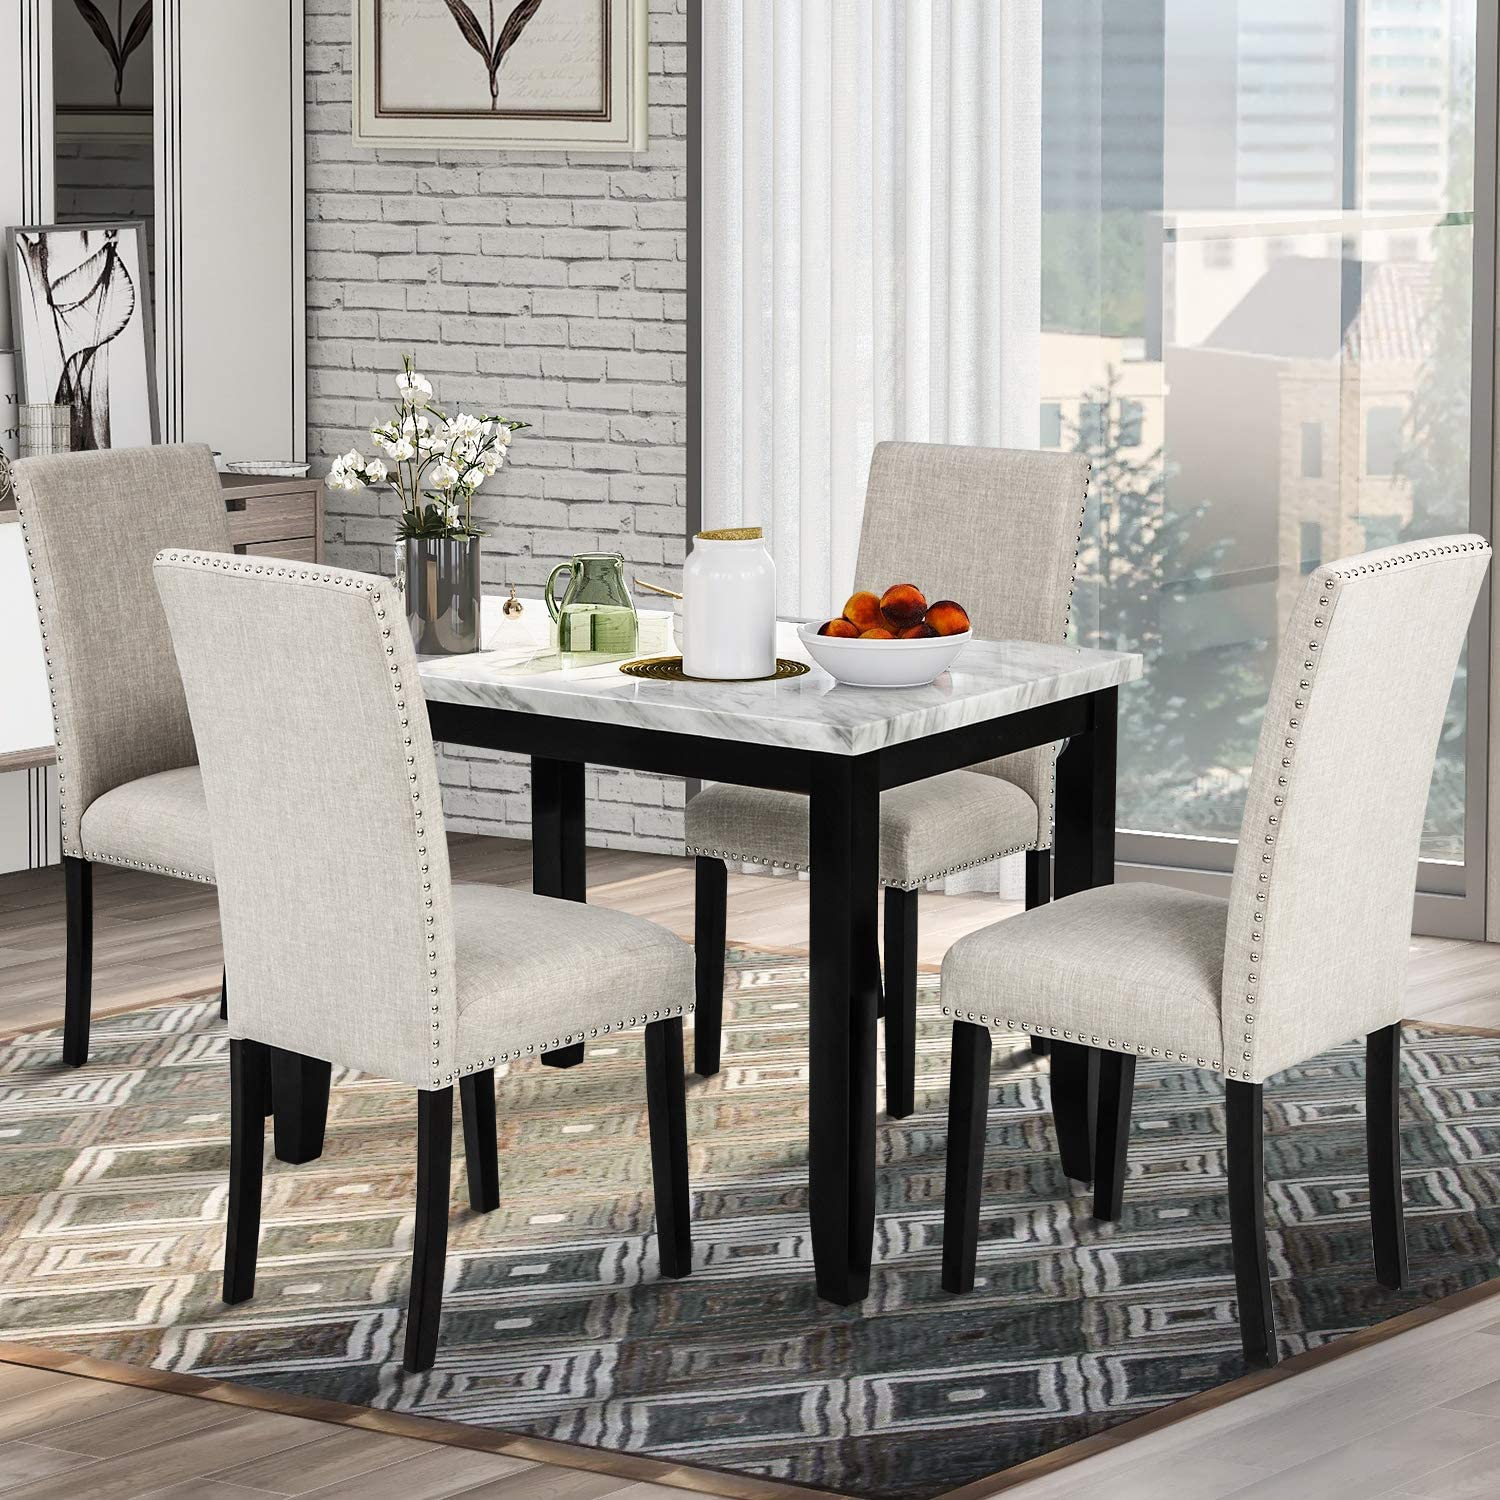 White//Beige P PURLOVE 5 Piece Dining Table Set Faux Marble Style Dining Room Table and 4 Chairs Marble Stickers MDF Top Table and 4 Thicken Cushion Dining Chairs for 4 Persons